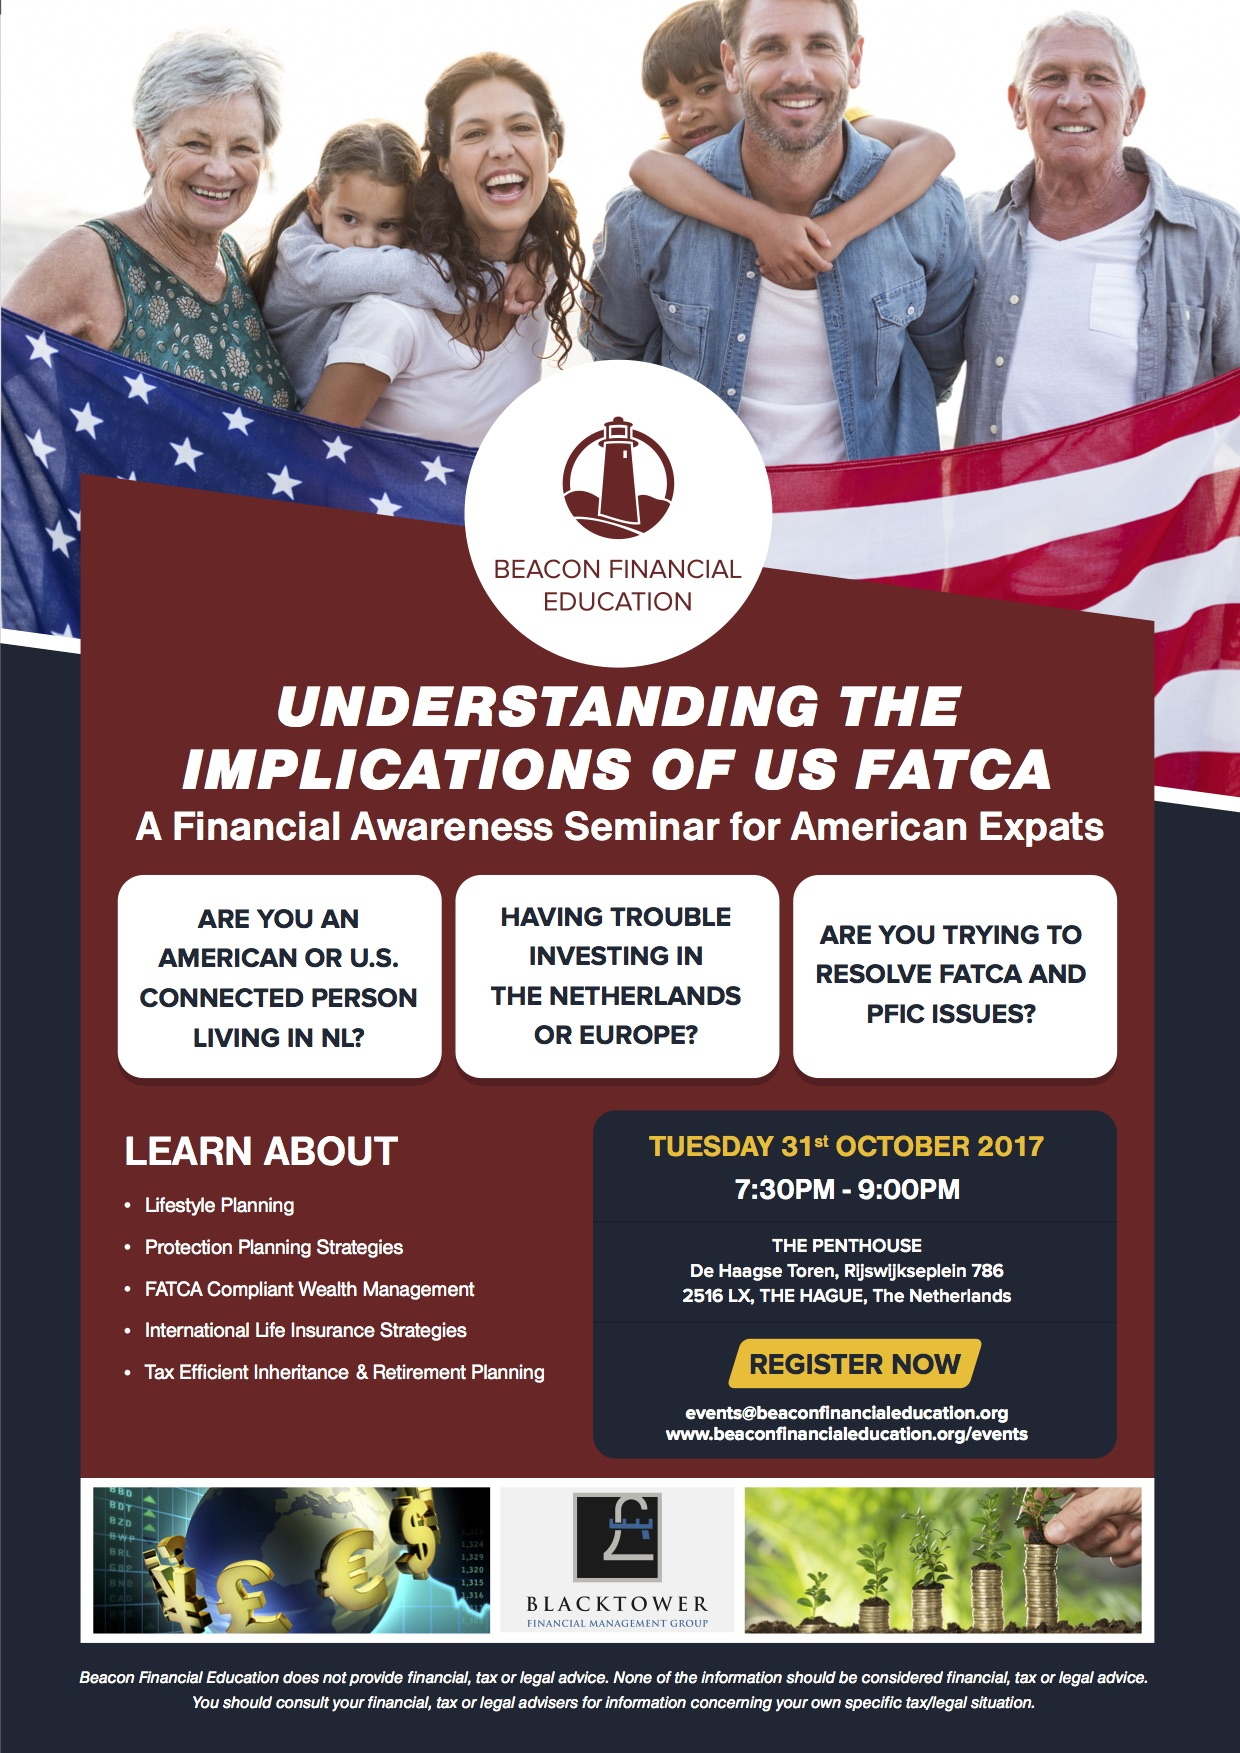 US FATCA seminar The Hague 31 Oct 2017